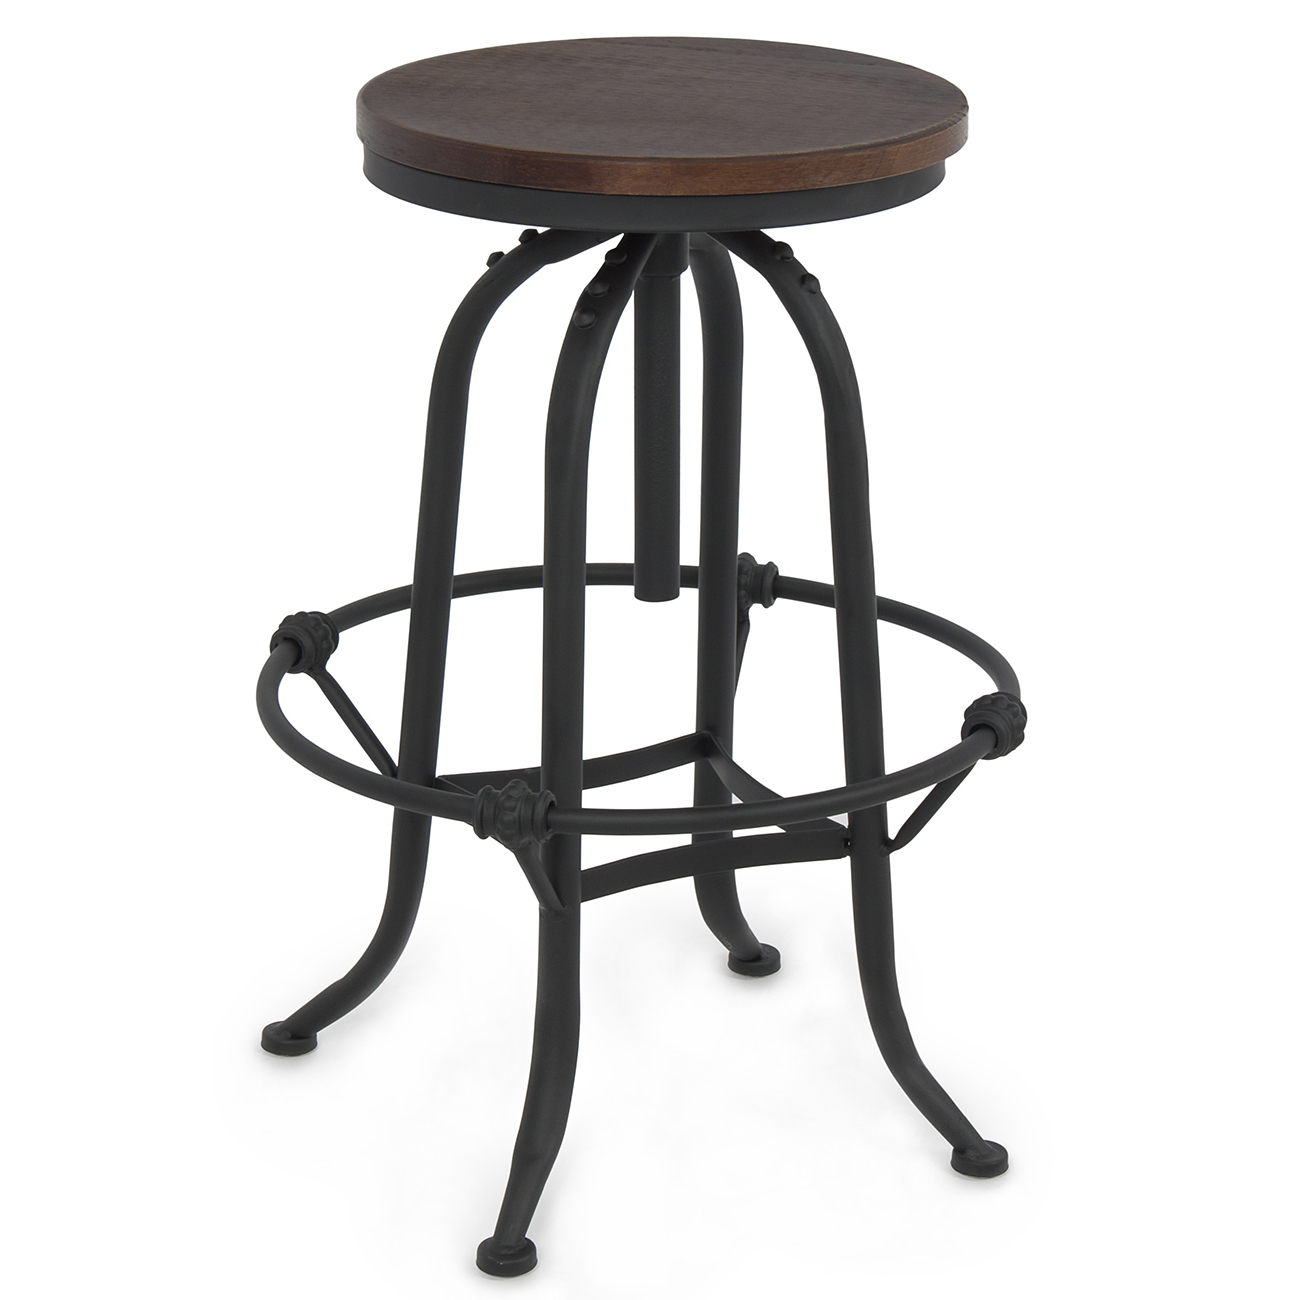 Rustic Modern Counter Stools Rustic Bar Stool Home Adjustable Seat Height Countertop